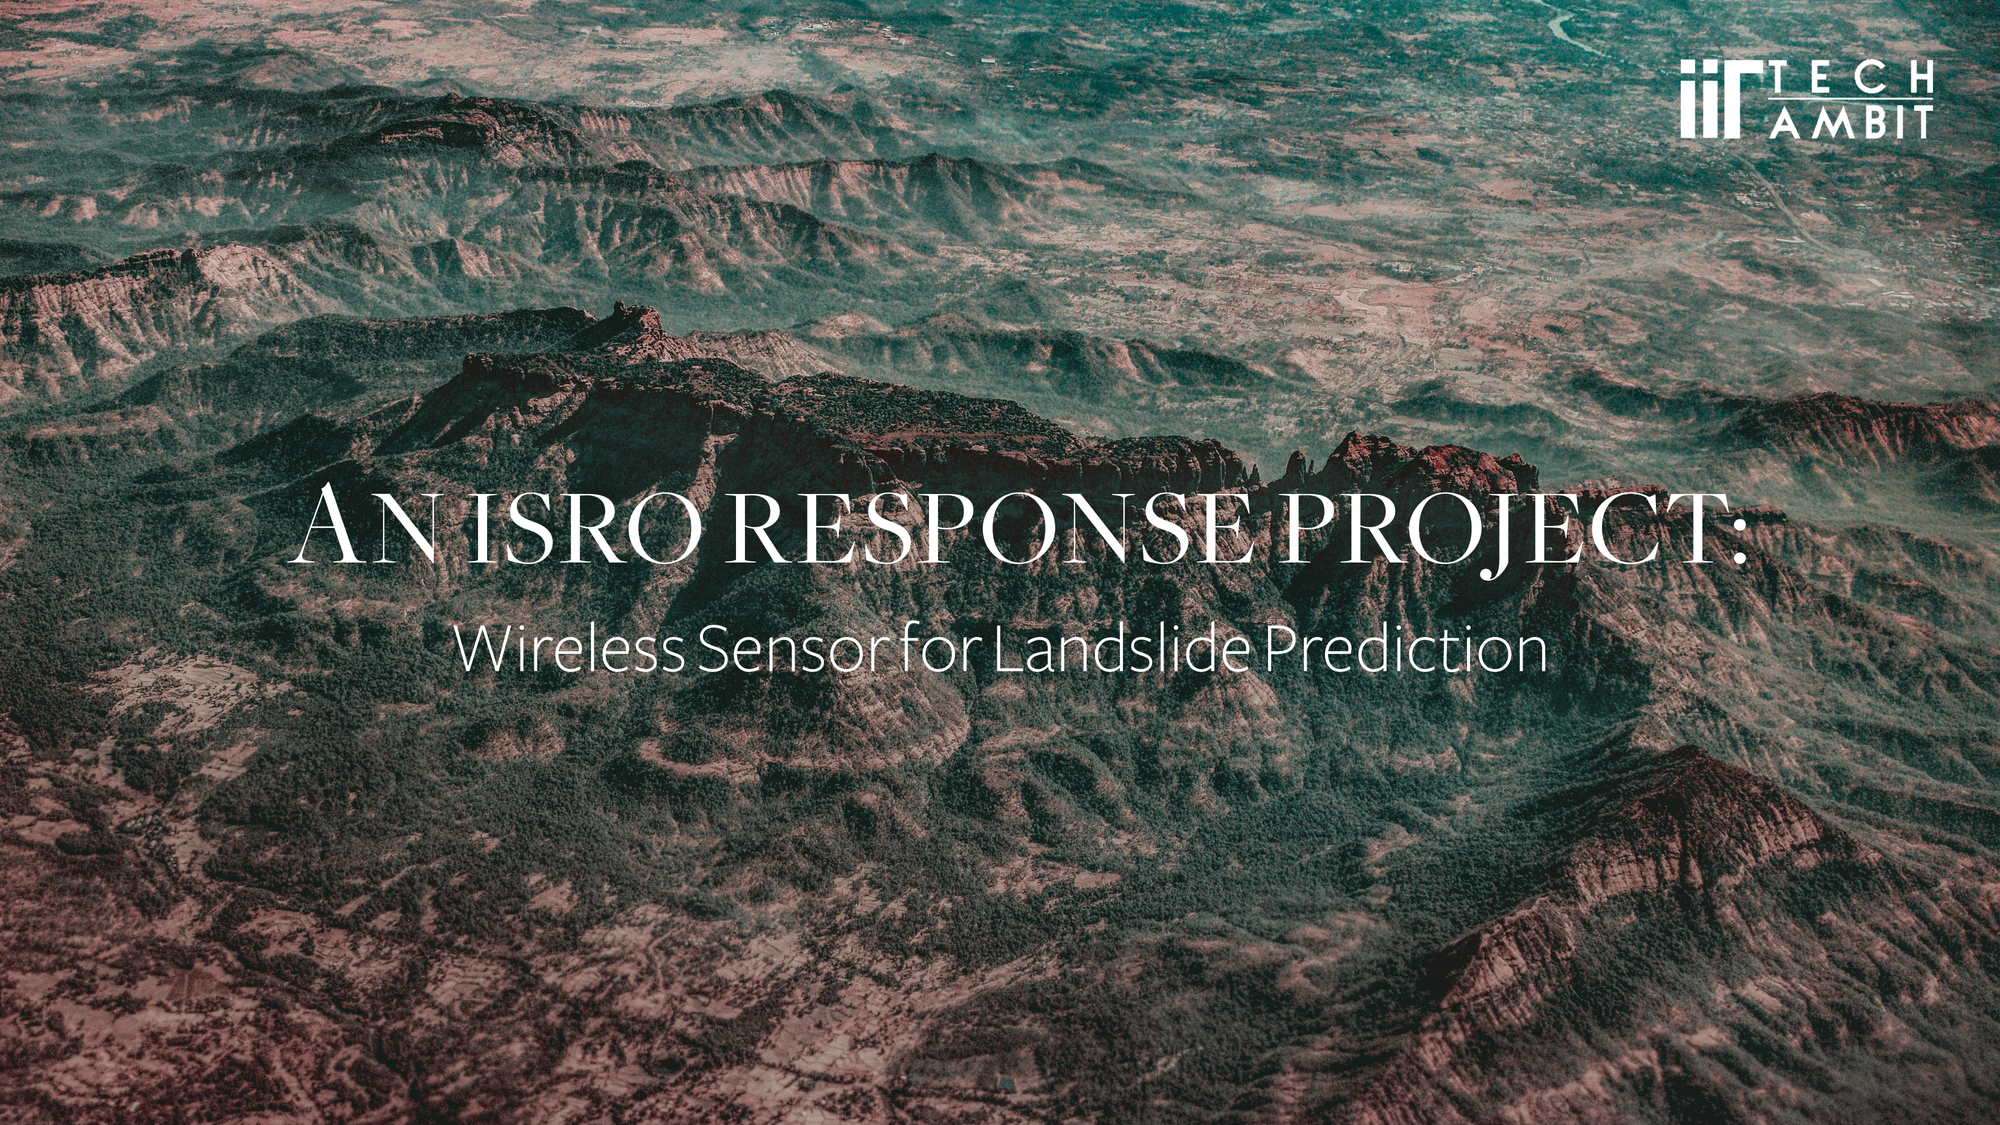 An ISRO Response Project: Wireless Sensor for Landslide Prediction